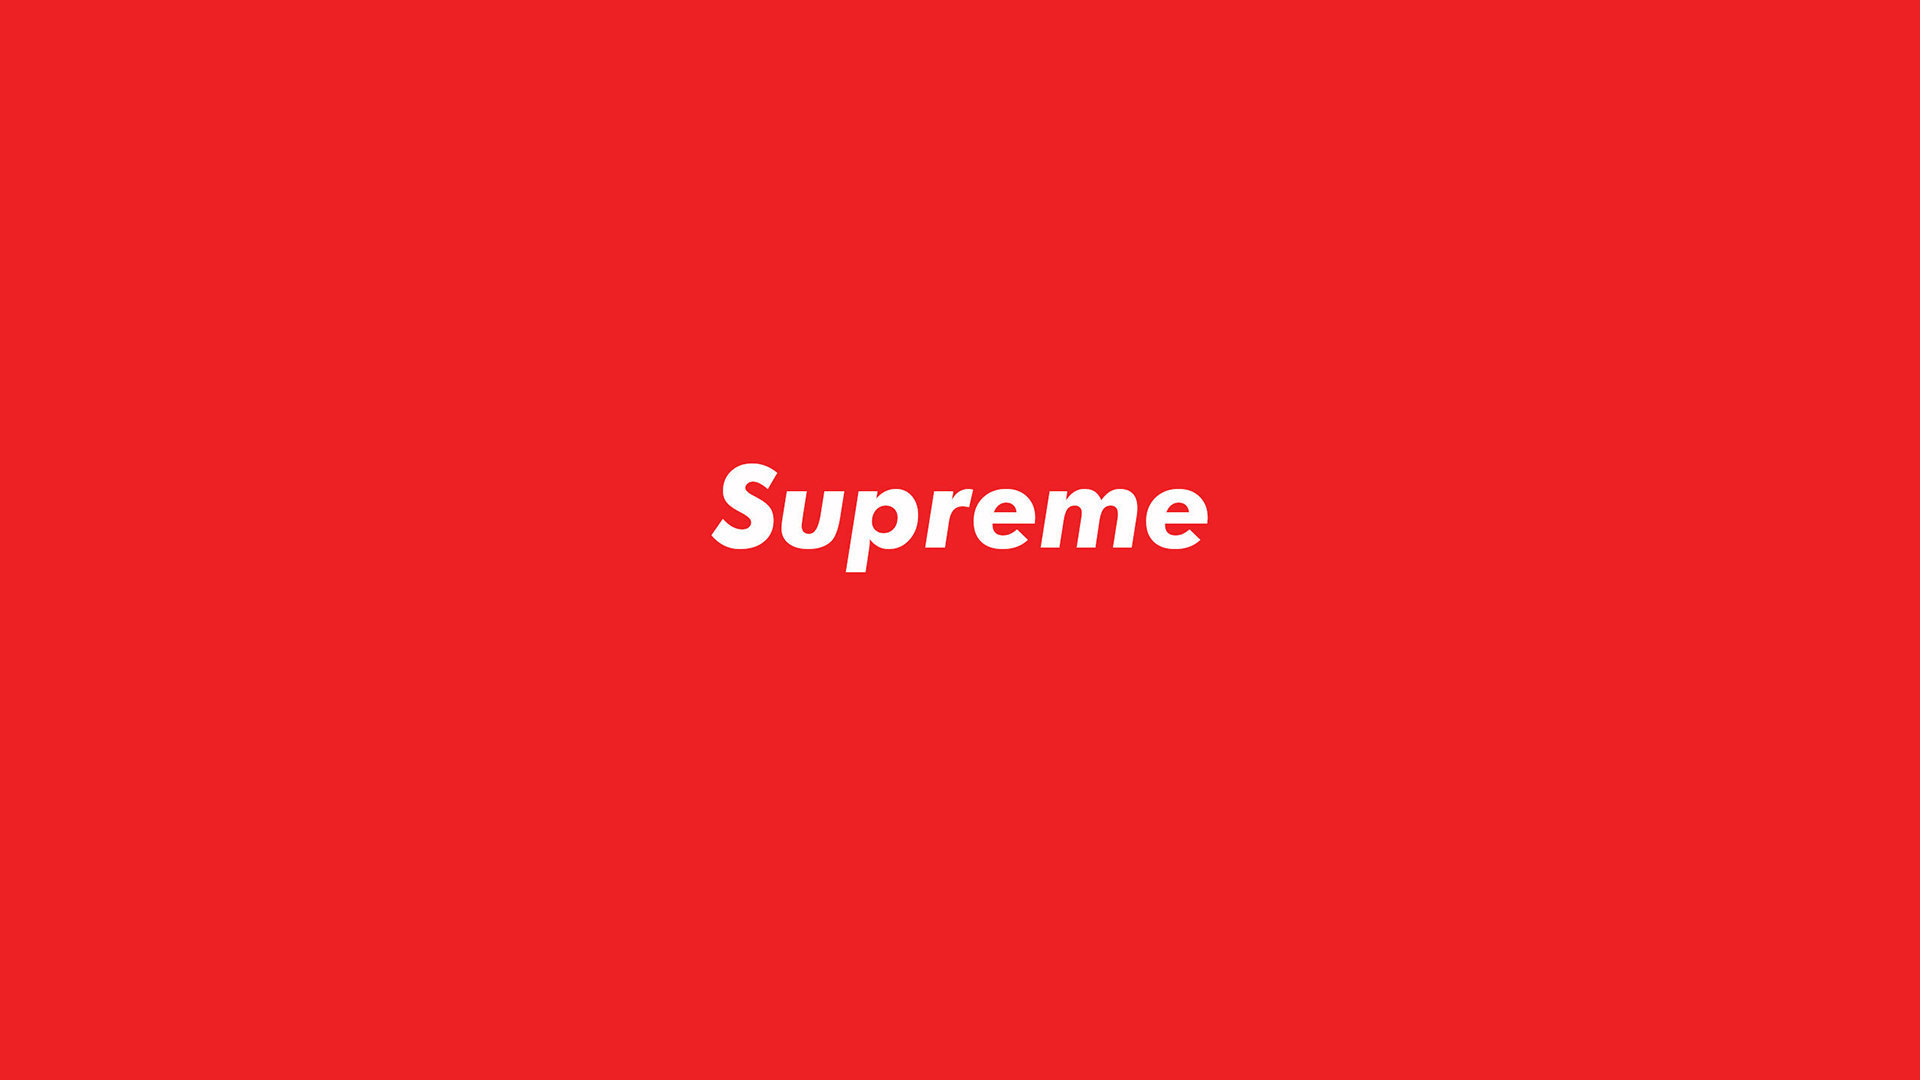 hd free Supreme wallpapers wallpapers